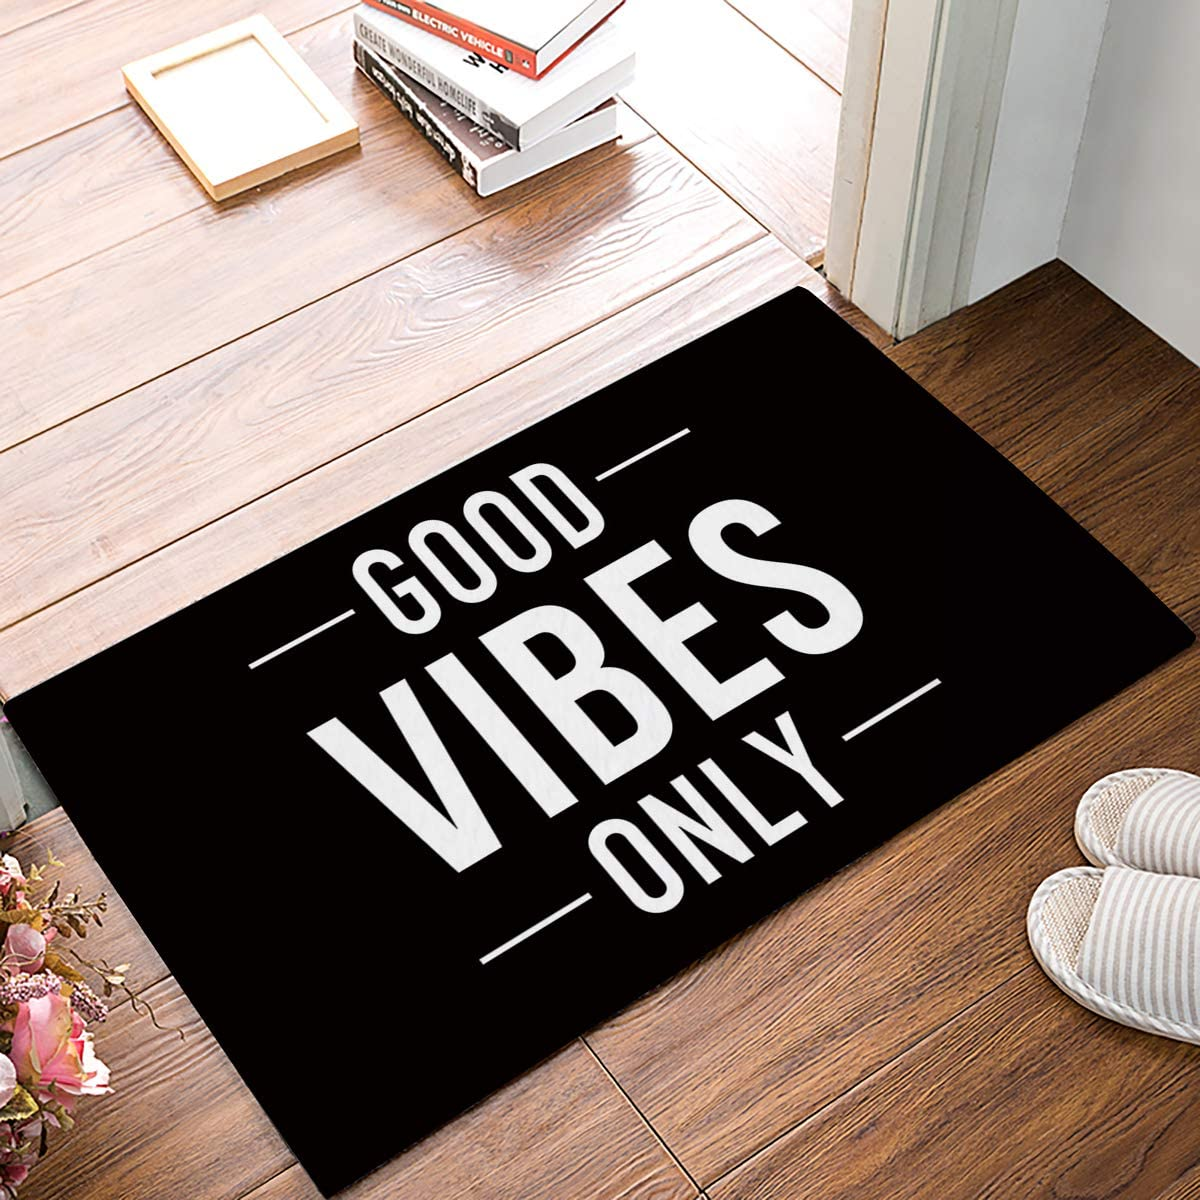 Funny Quotes Door Mat, Good Vibes Only Black and White, Decorative Felt Floor Mat with Non-Skid Backing, Fit for Home Indoor Kitchen (20 x 31.5 Inch)